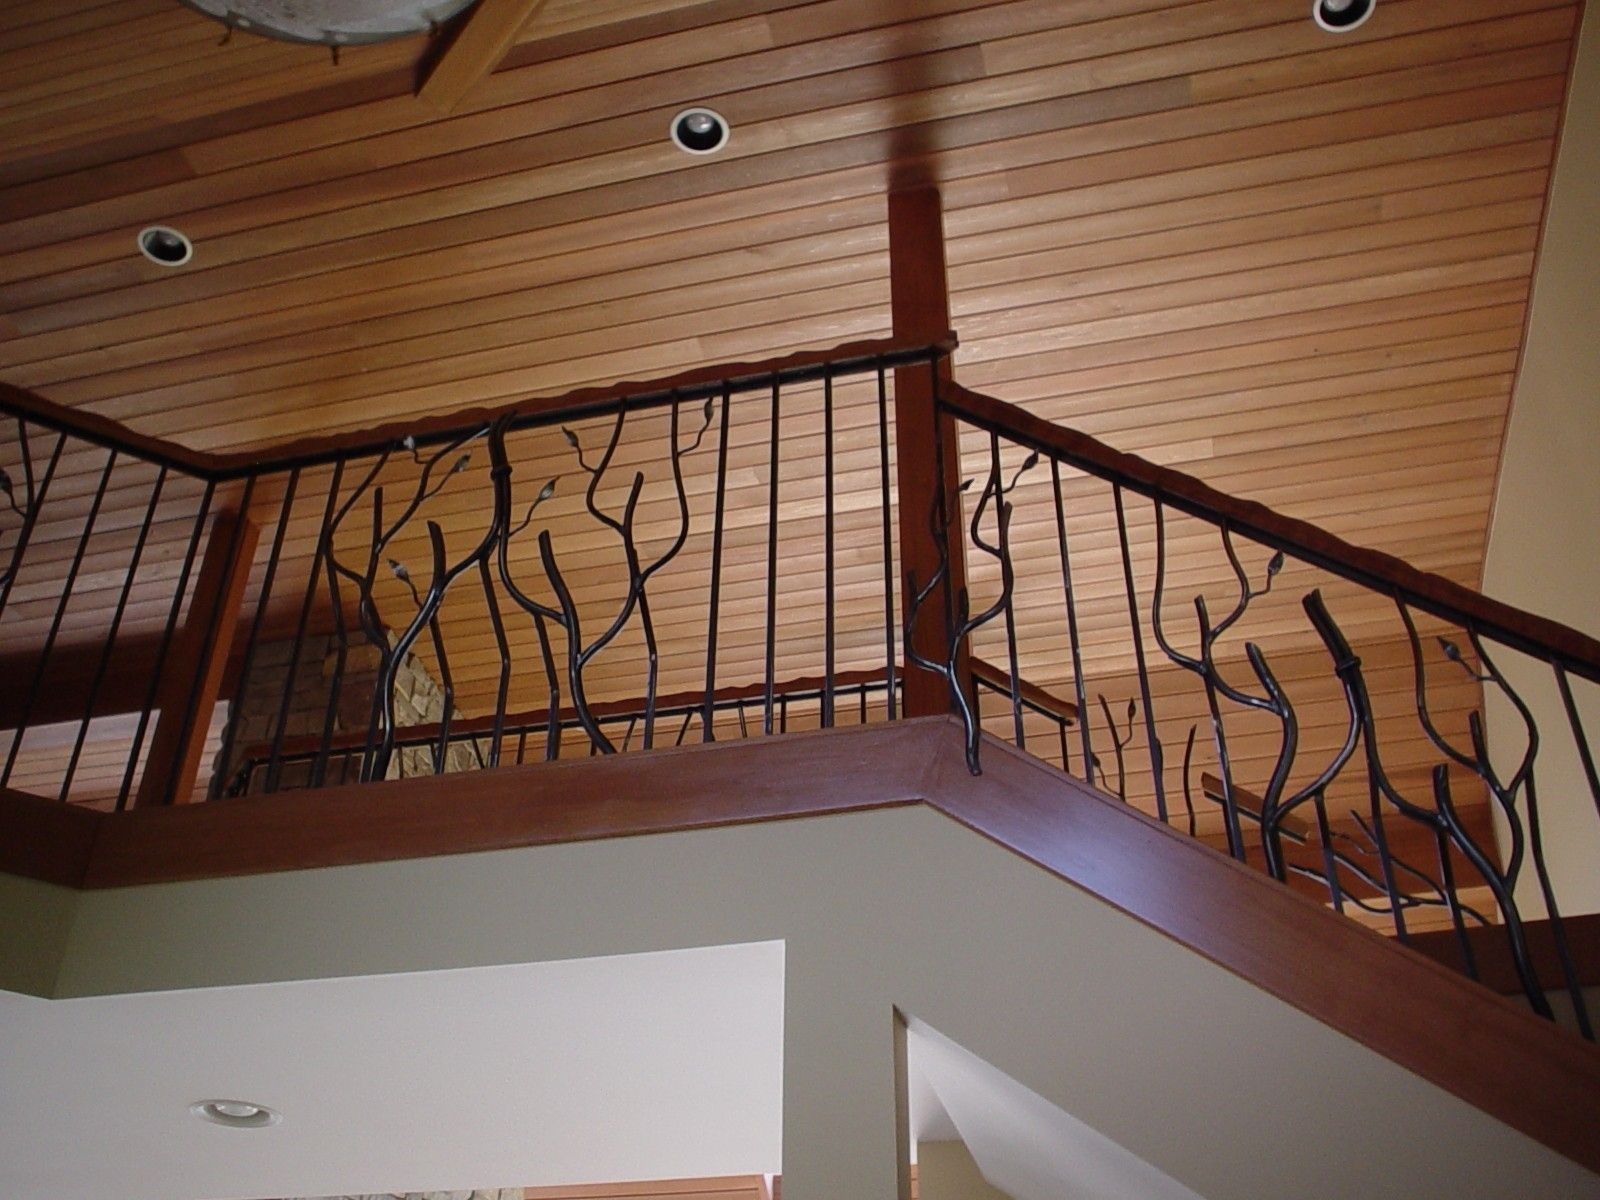 Best Custom Made Whiteford Handrail Handrail Whiteford Wrought Iron 400 x 300